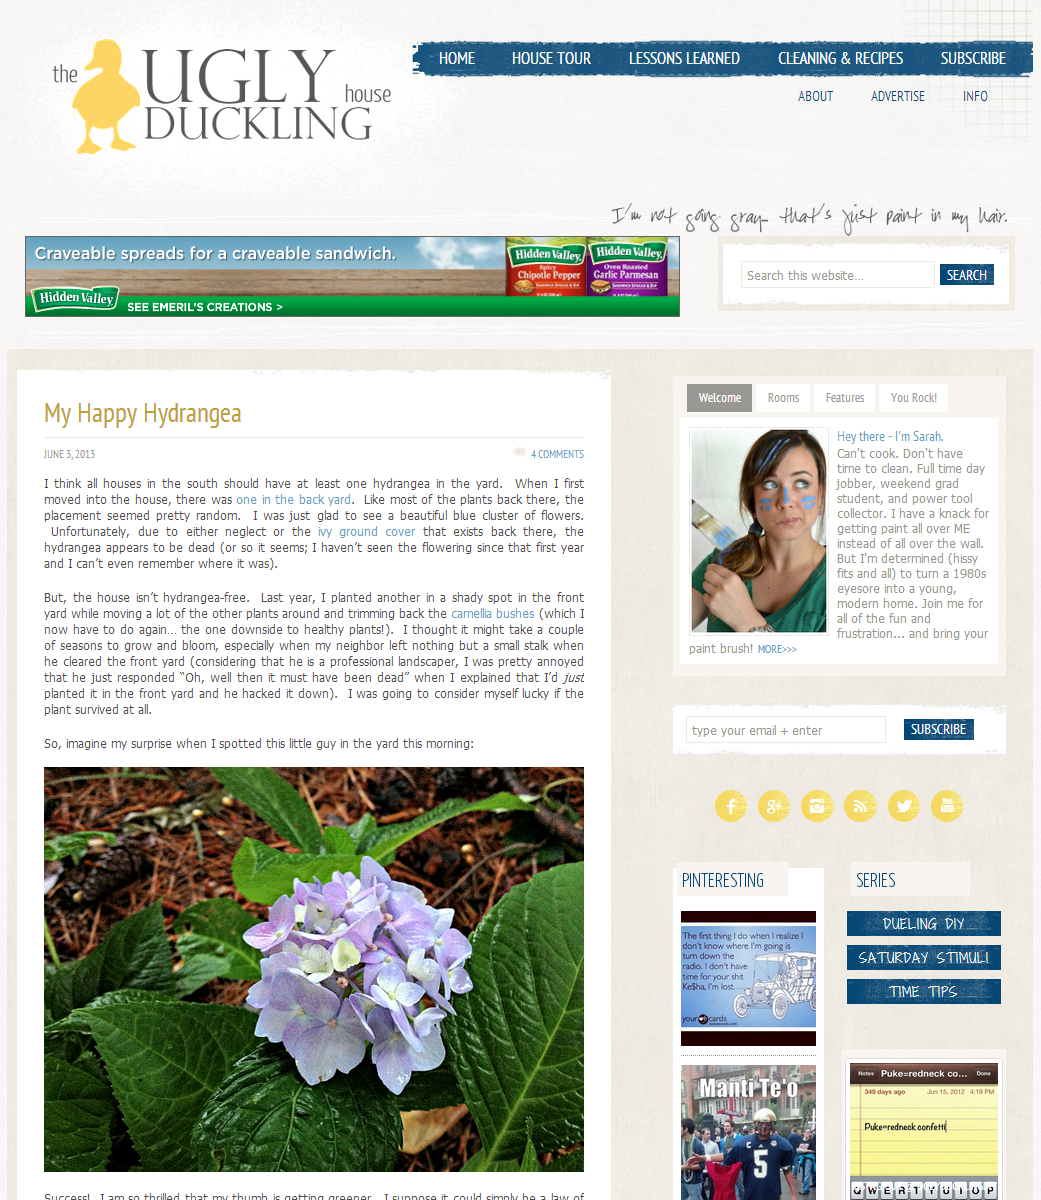 The Ugly Duckling House blog